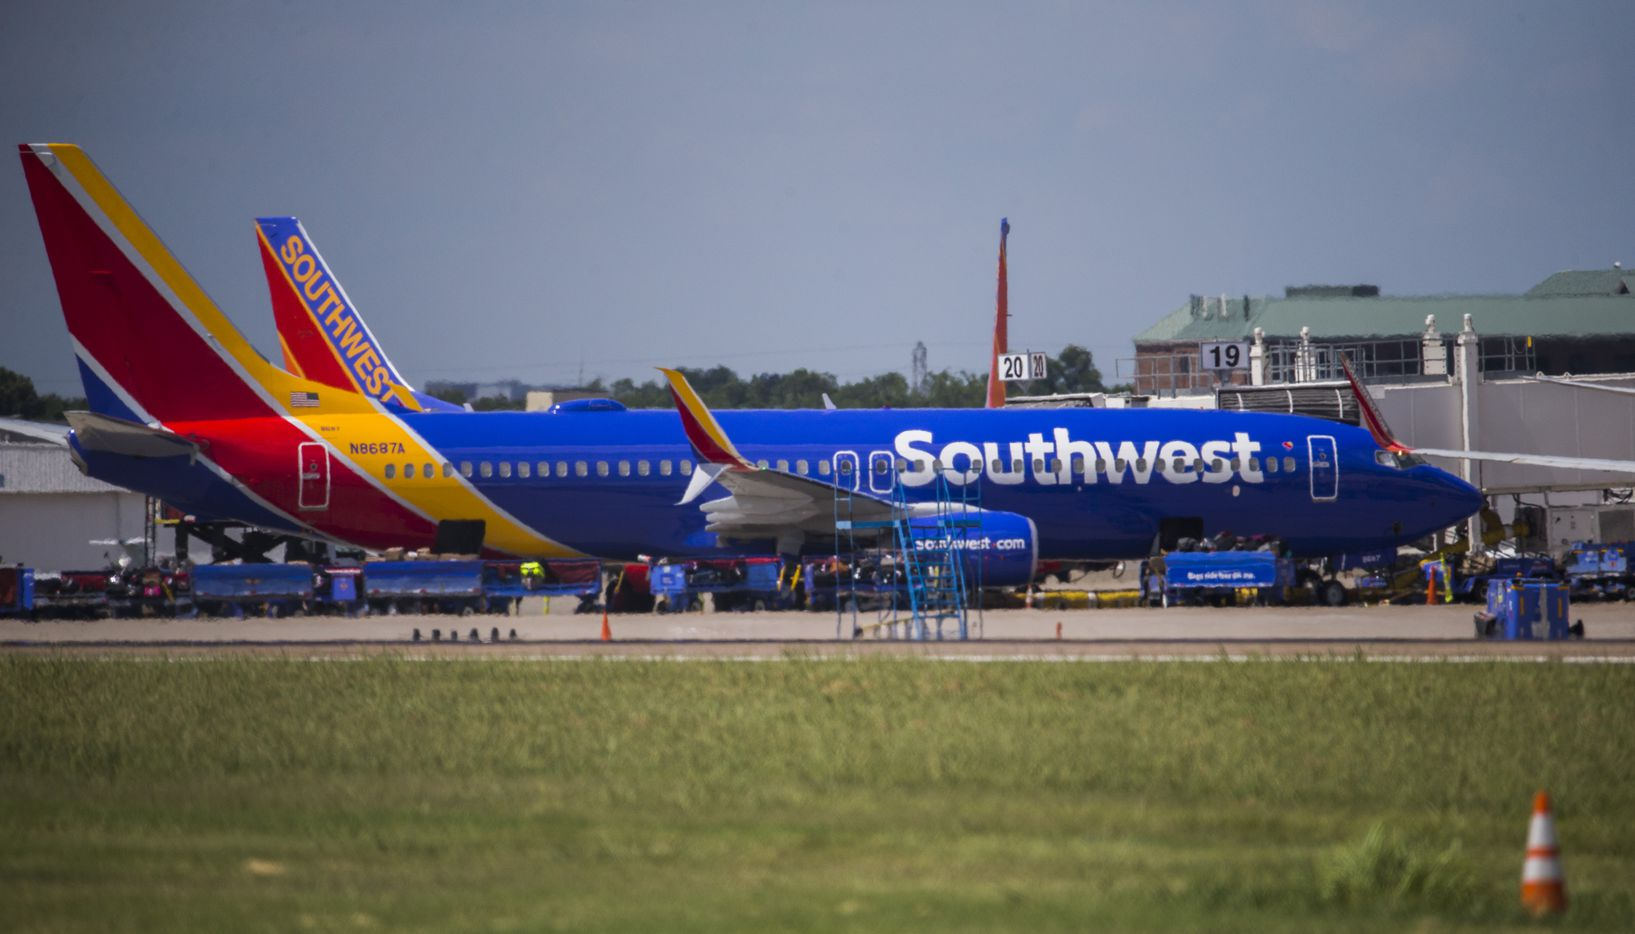 Southwest Airlines airplanes are parked at terminals while computer systems recover on Wednesday, July 20, 2016 at Dallas Love Field Airport in Dallas. (Ashley Landis/The Dallas Morning News)